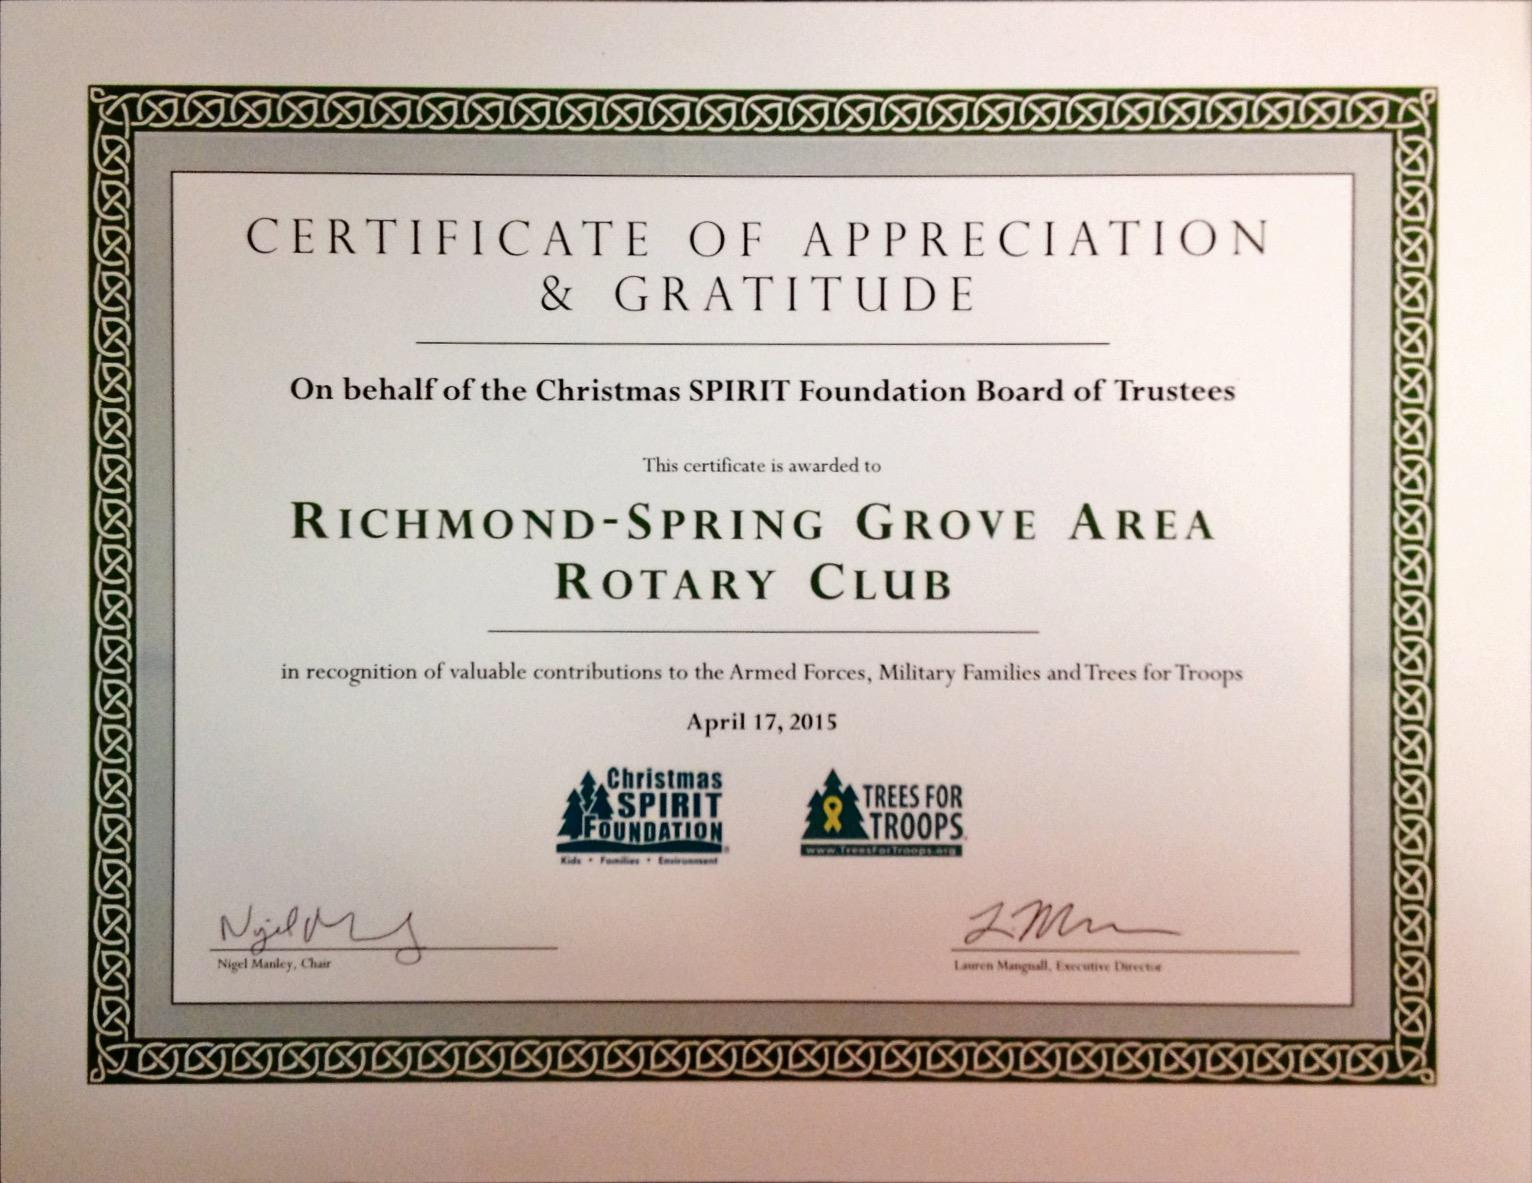 Club receives certificate of appreciation gratitude richmond our club received on april 17 2015 a certificate of appreciation gratitude on behalf of the christmas spirit foundation board of trustees yadclub Image collections